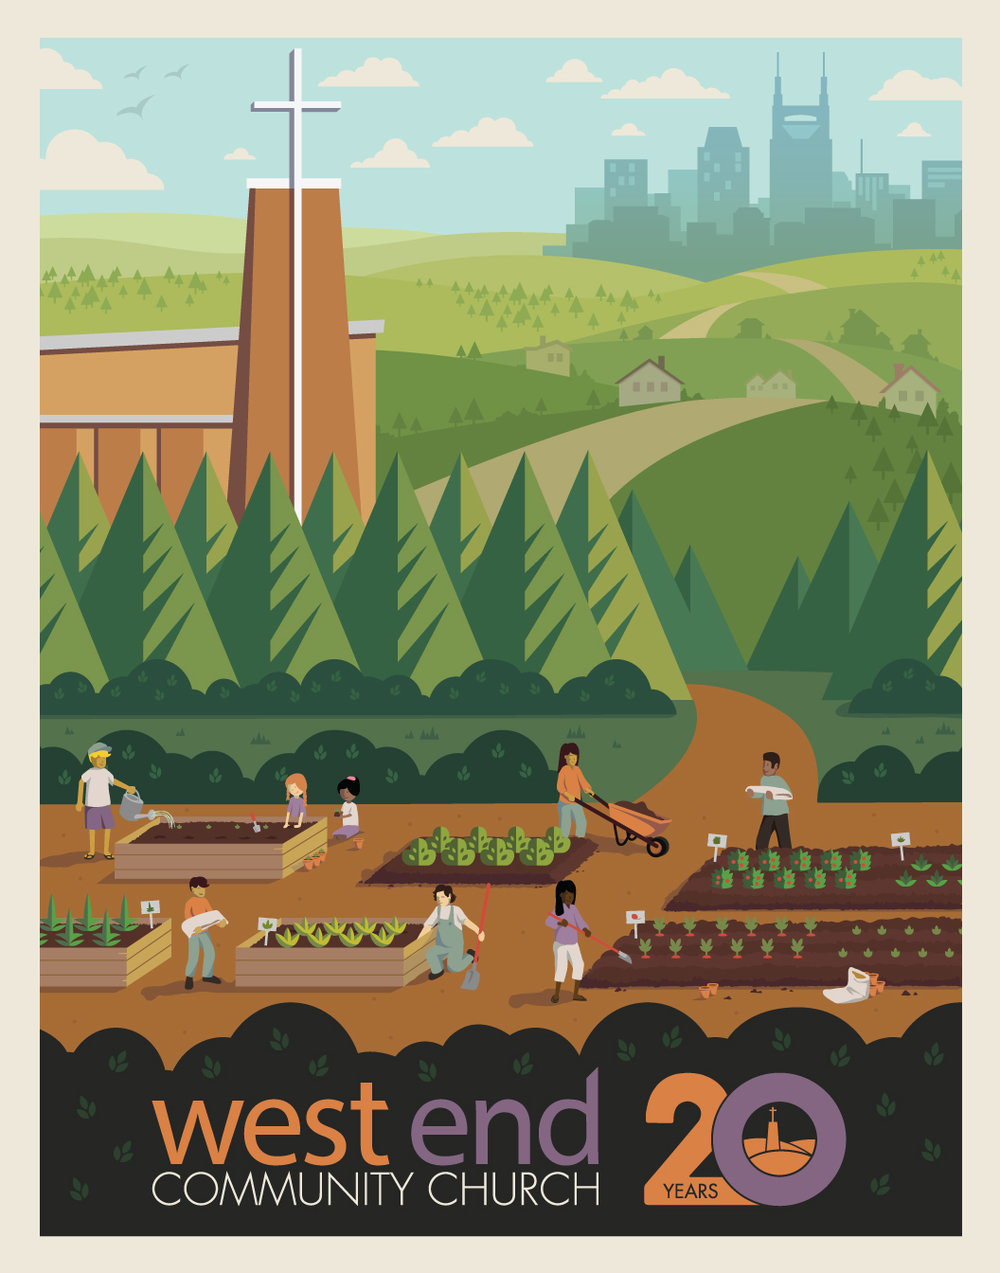 West_End_Community_Church_Poster.jpg